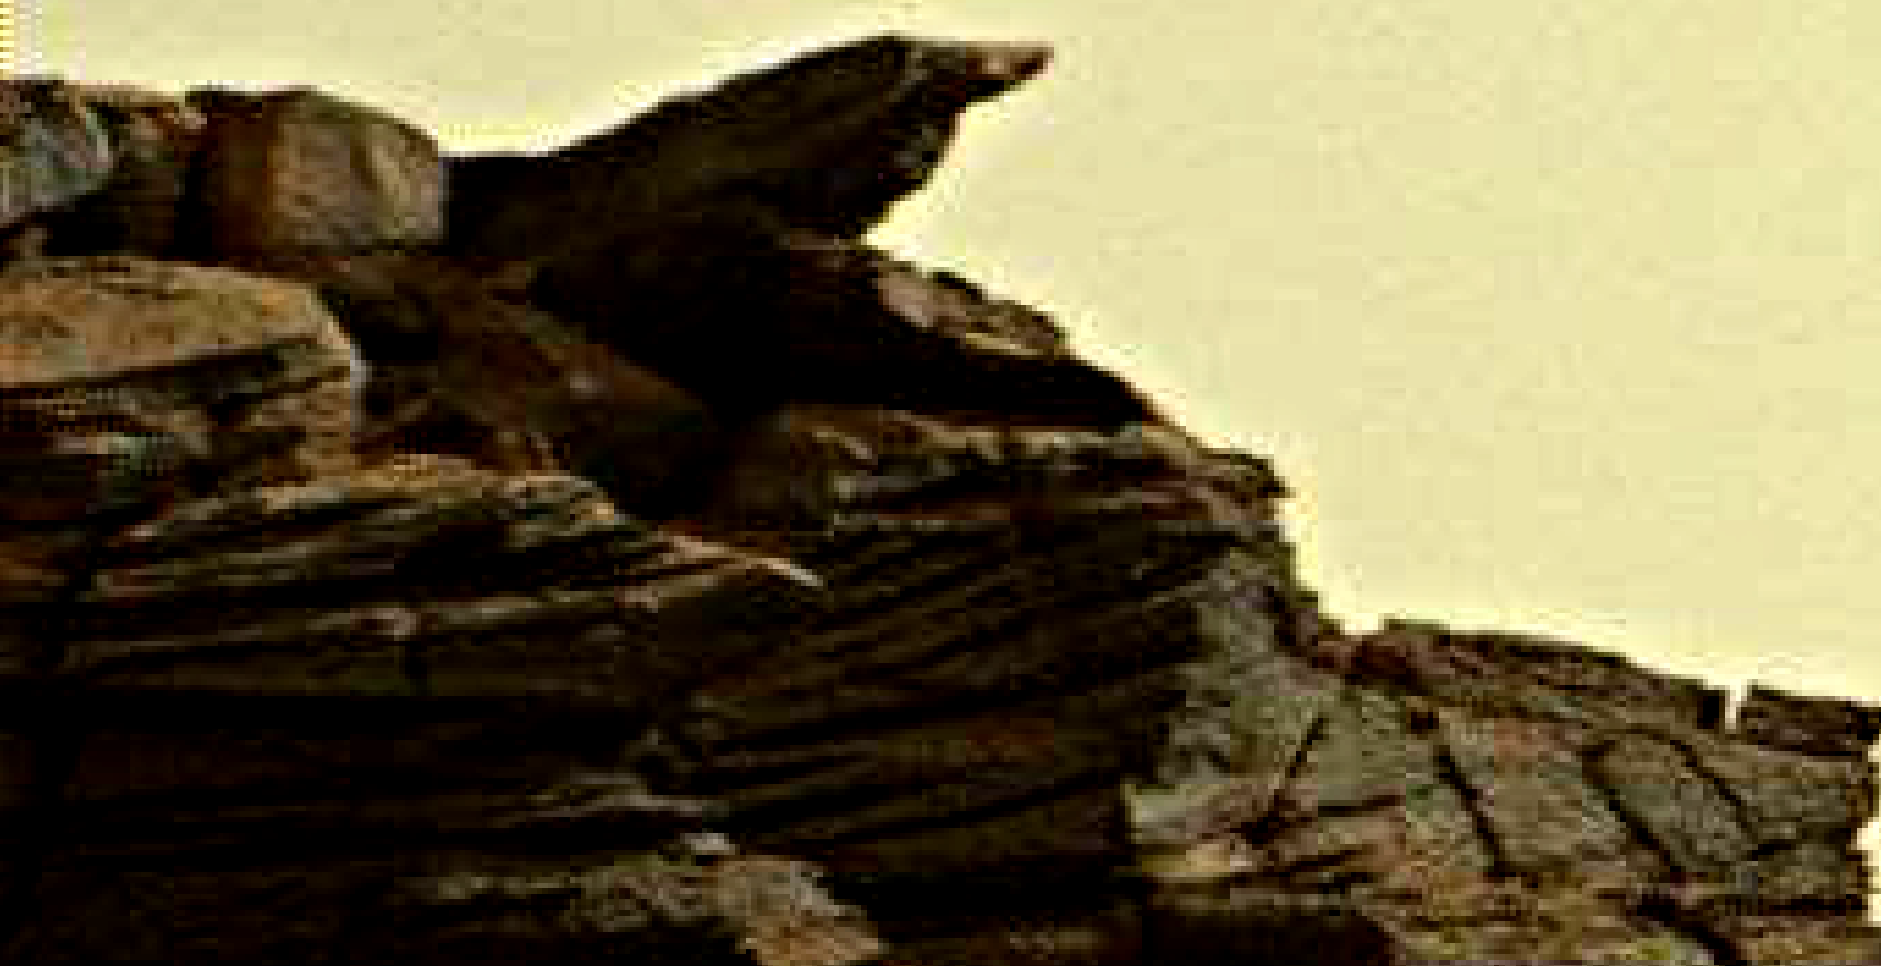 mars sol 1419 anomaly artifacts 1a was life on mars